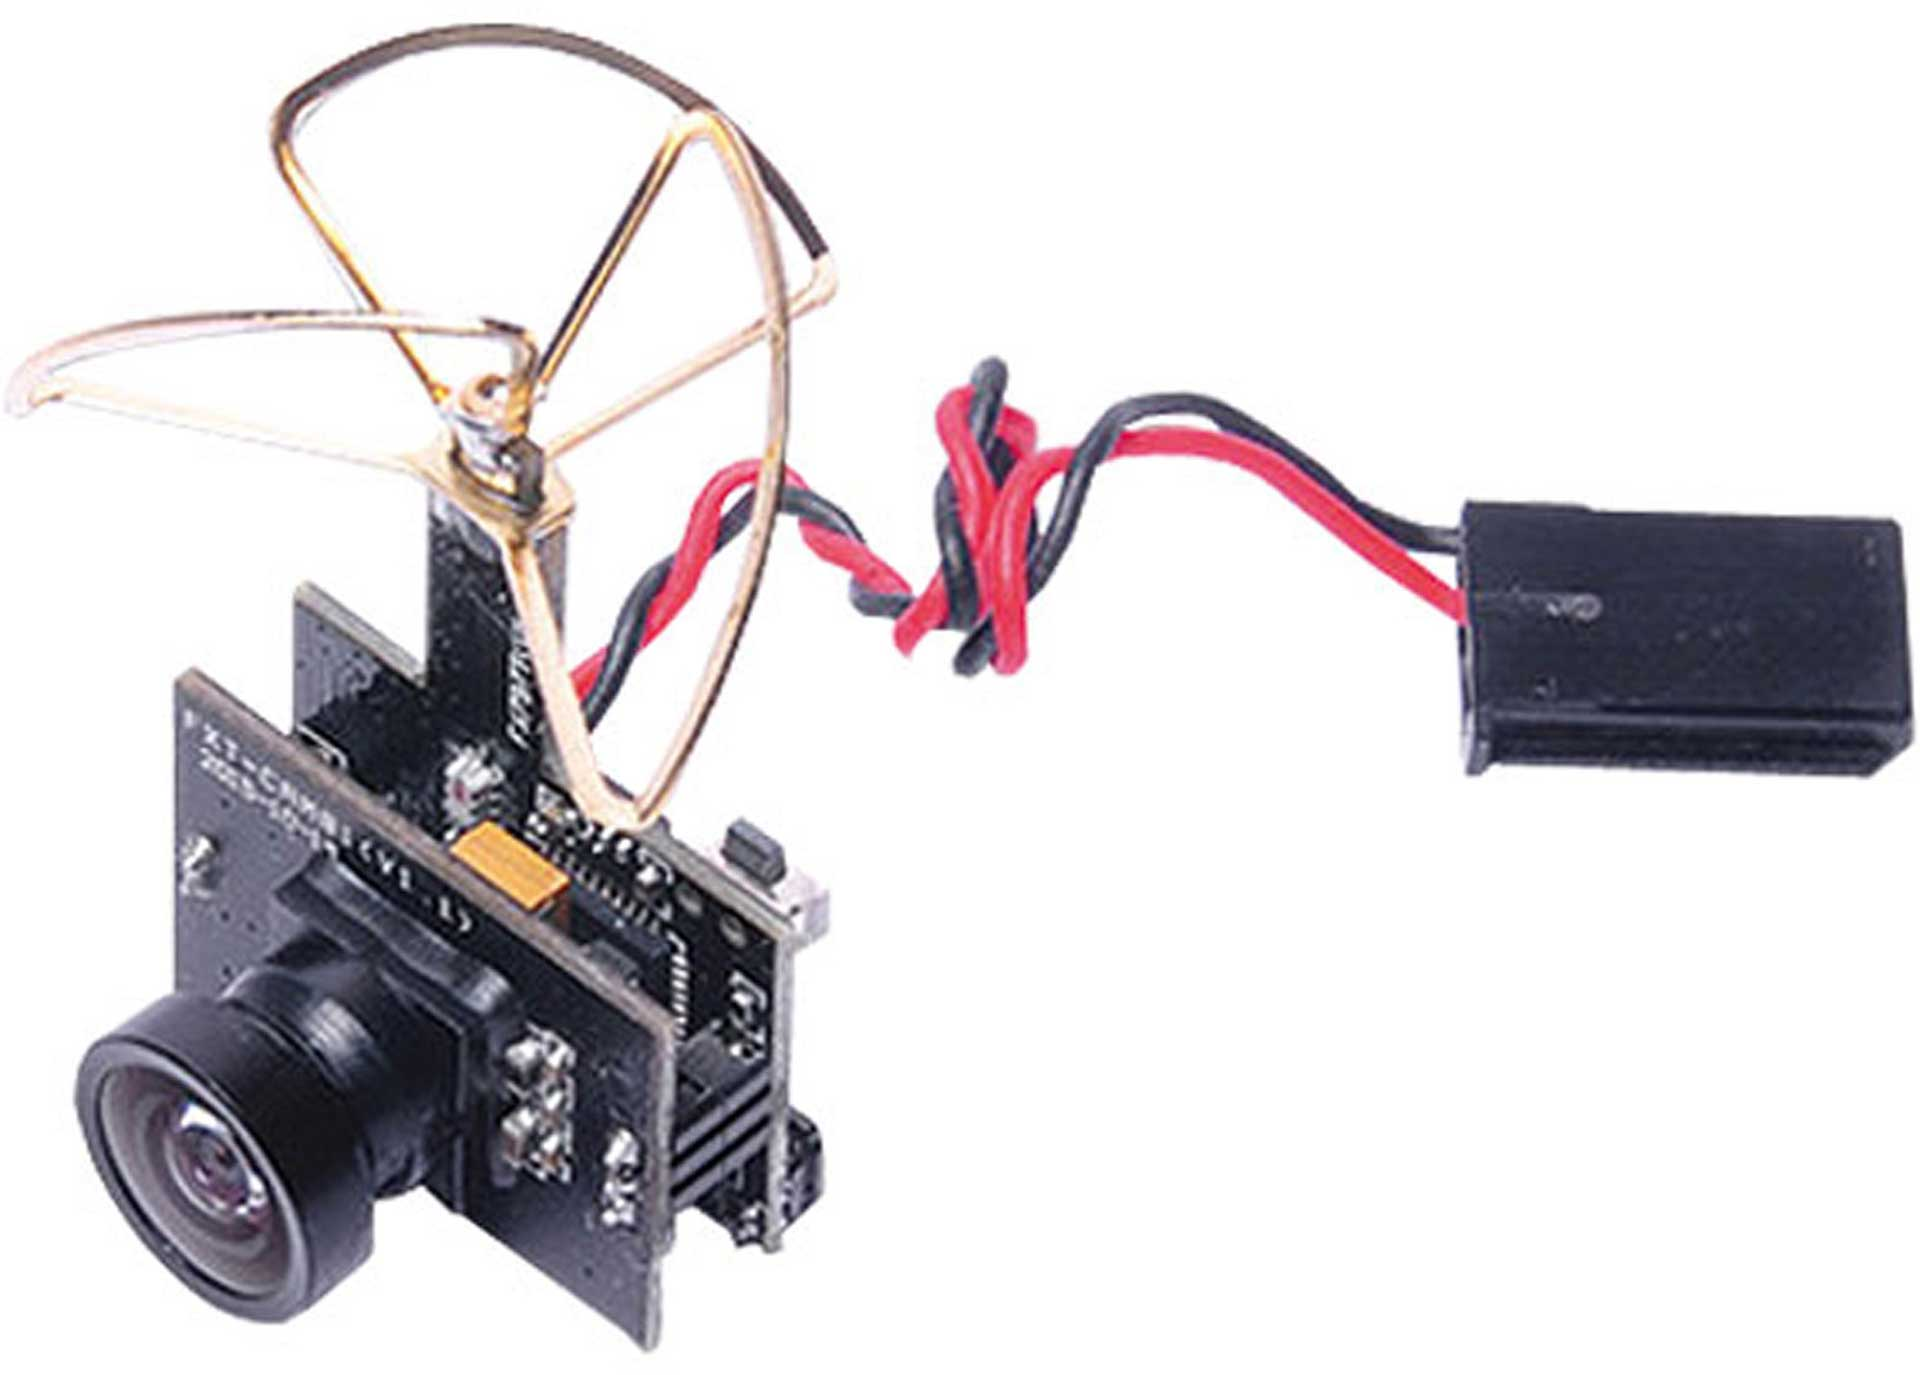 HYPERION 600TVL MINI FPV CAMERA WITH BUILT-IN 5.8GHZ 25MW VTX